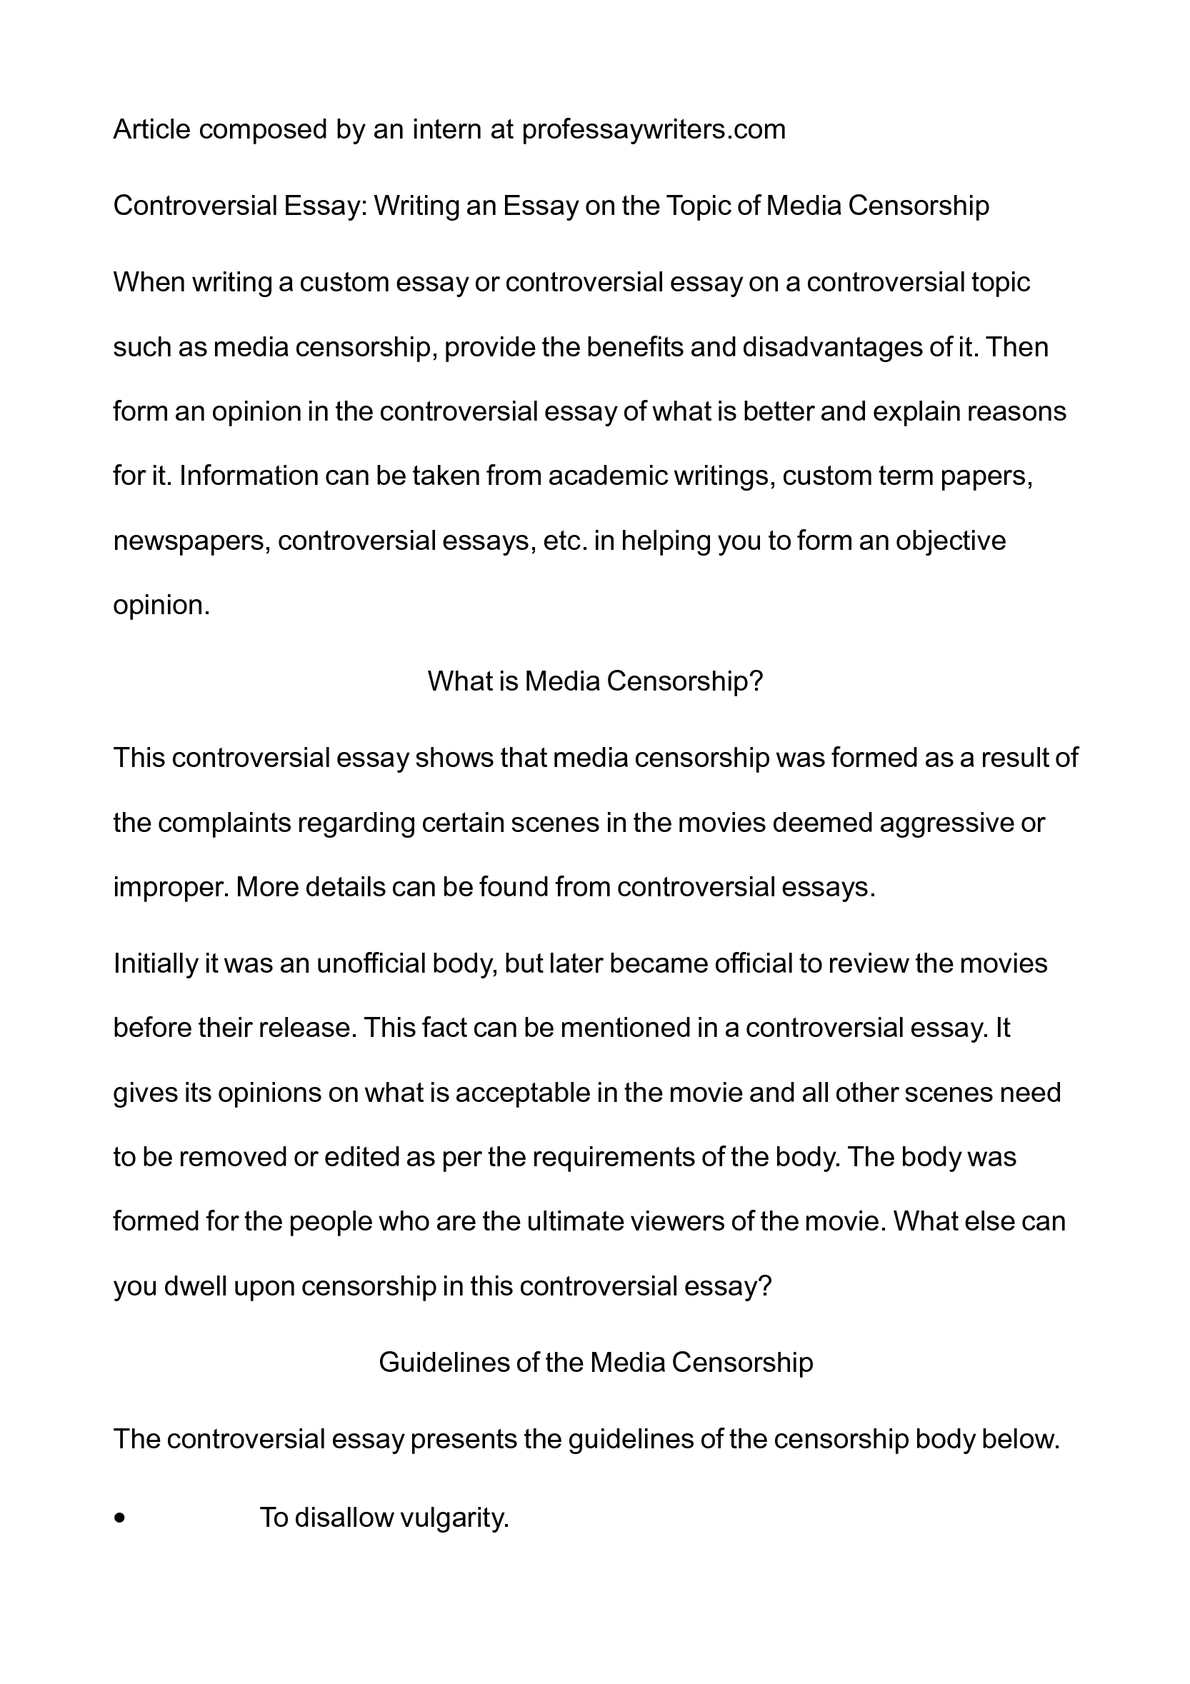 008 Essay Example Controversial Best Topics For High School Students Outline Format On Immigration Full